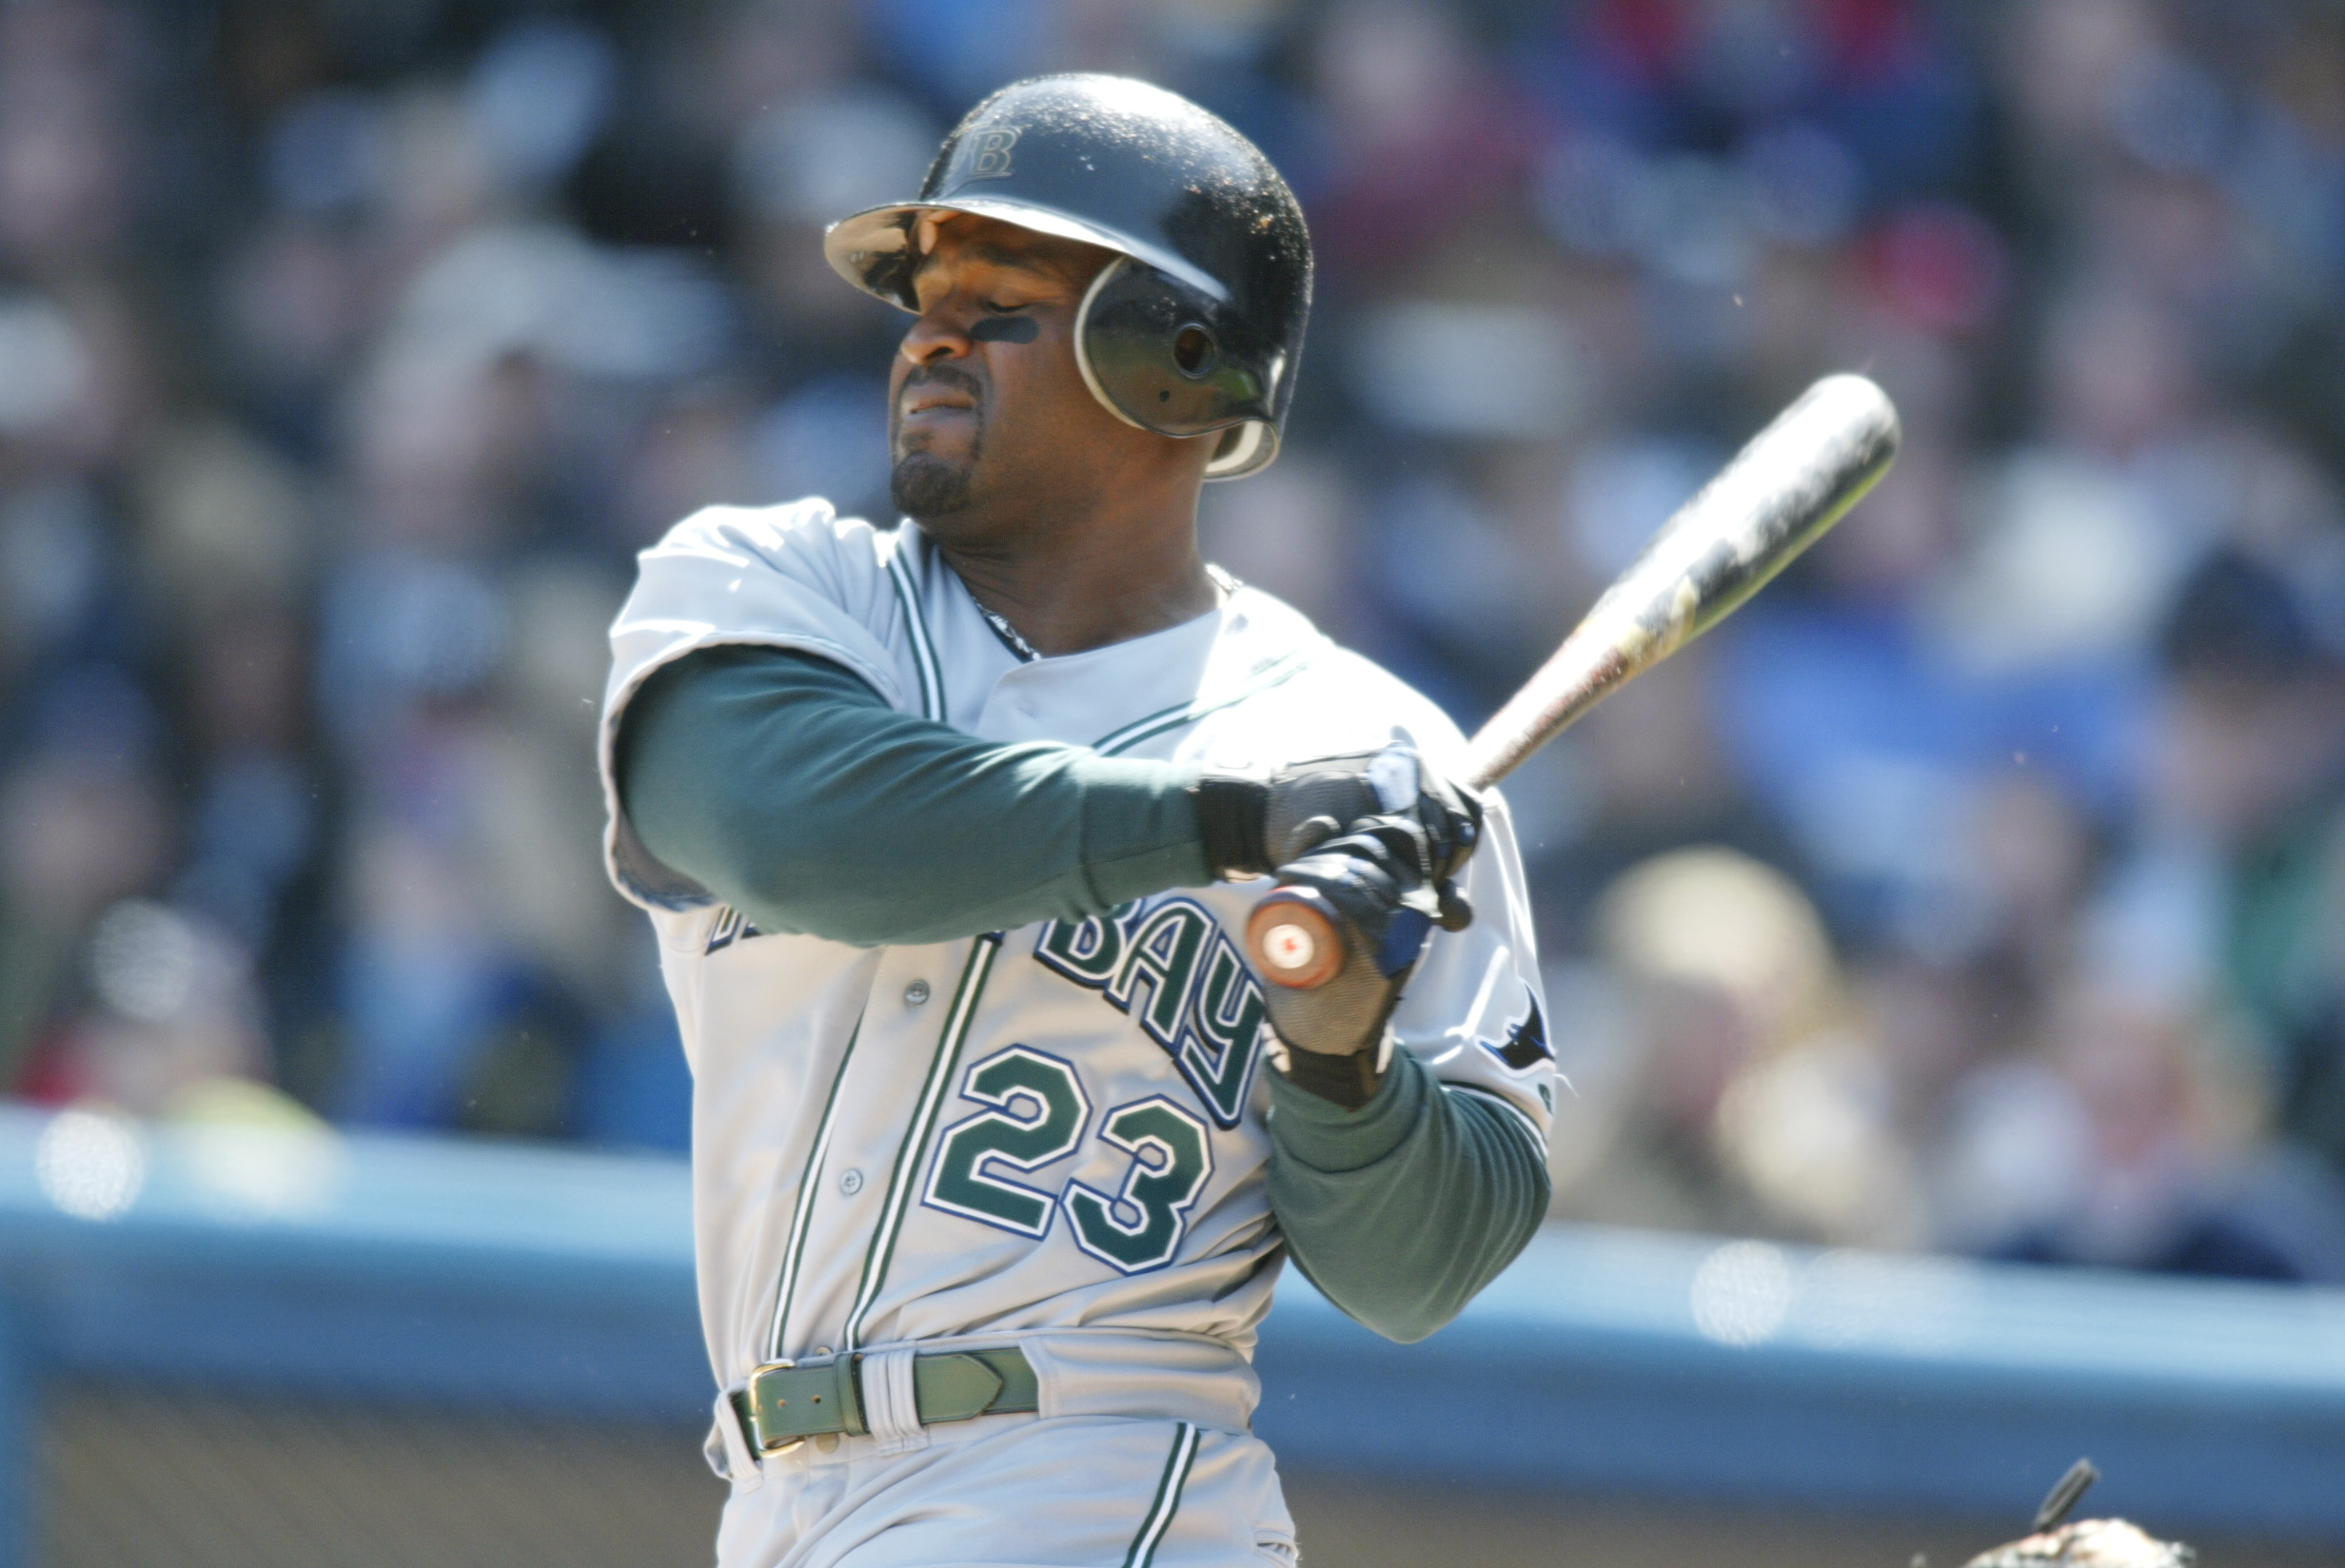 07 Apr 2002 :  Greg Vaughn #23 of the Tampa Bay Devil Rays hits against the New York Yankees during the game at Yankee Stadium  in the Bronx, New York. The Yankees won 7-2. DIGITAL IMAGE.  Mandatory Credit: Al Bello/Getty Images